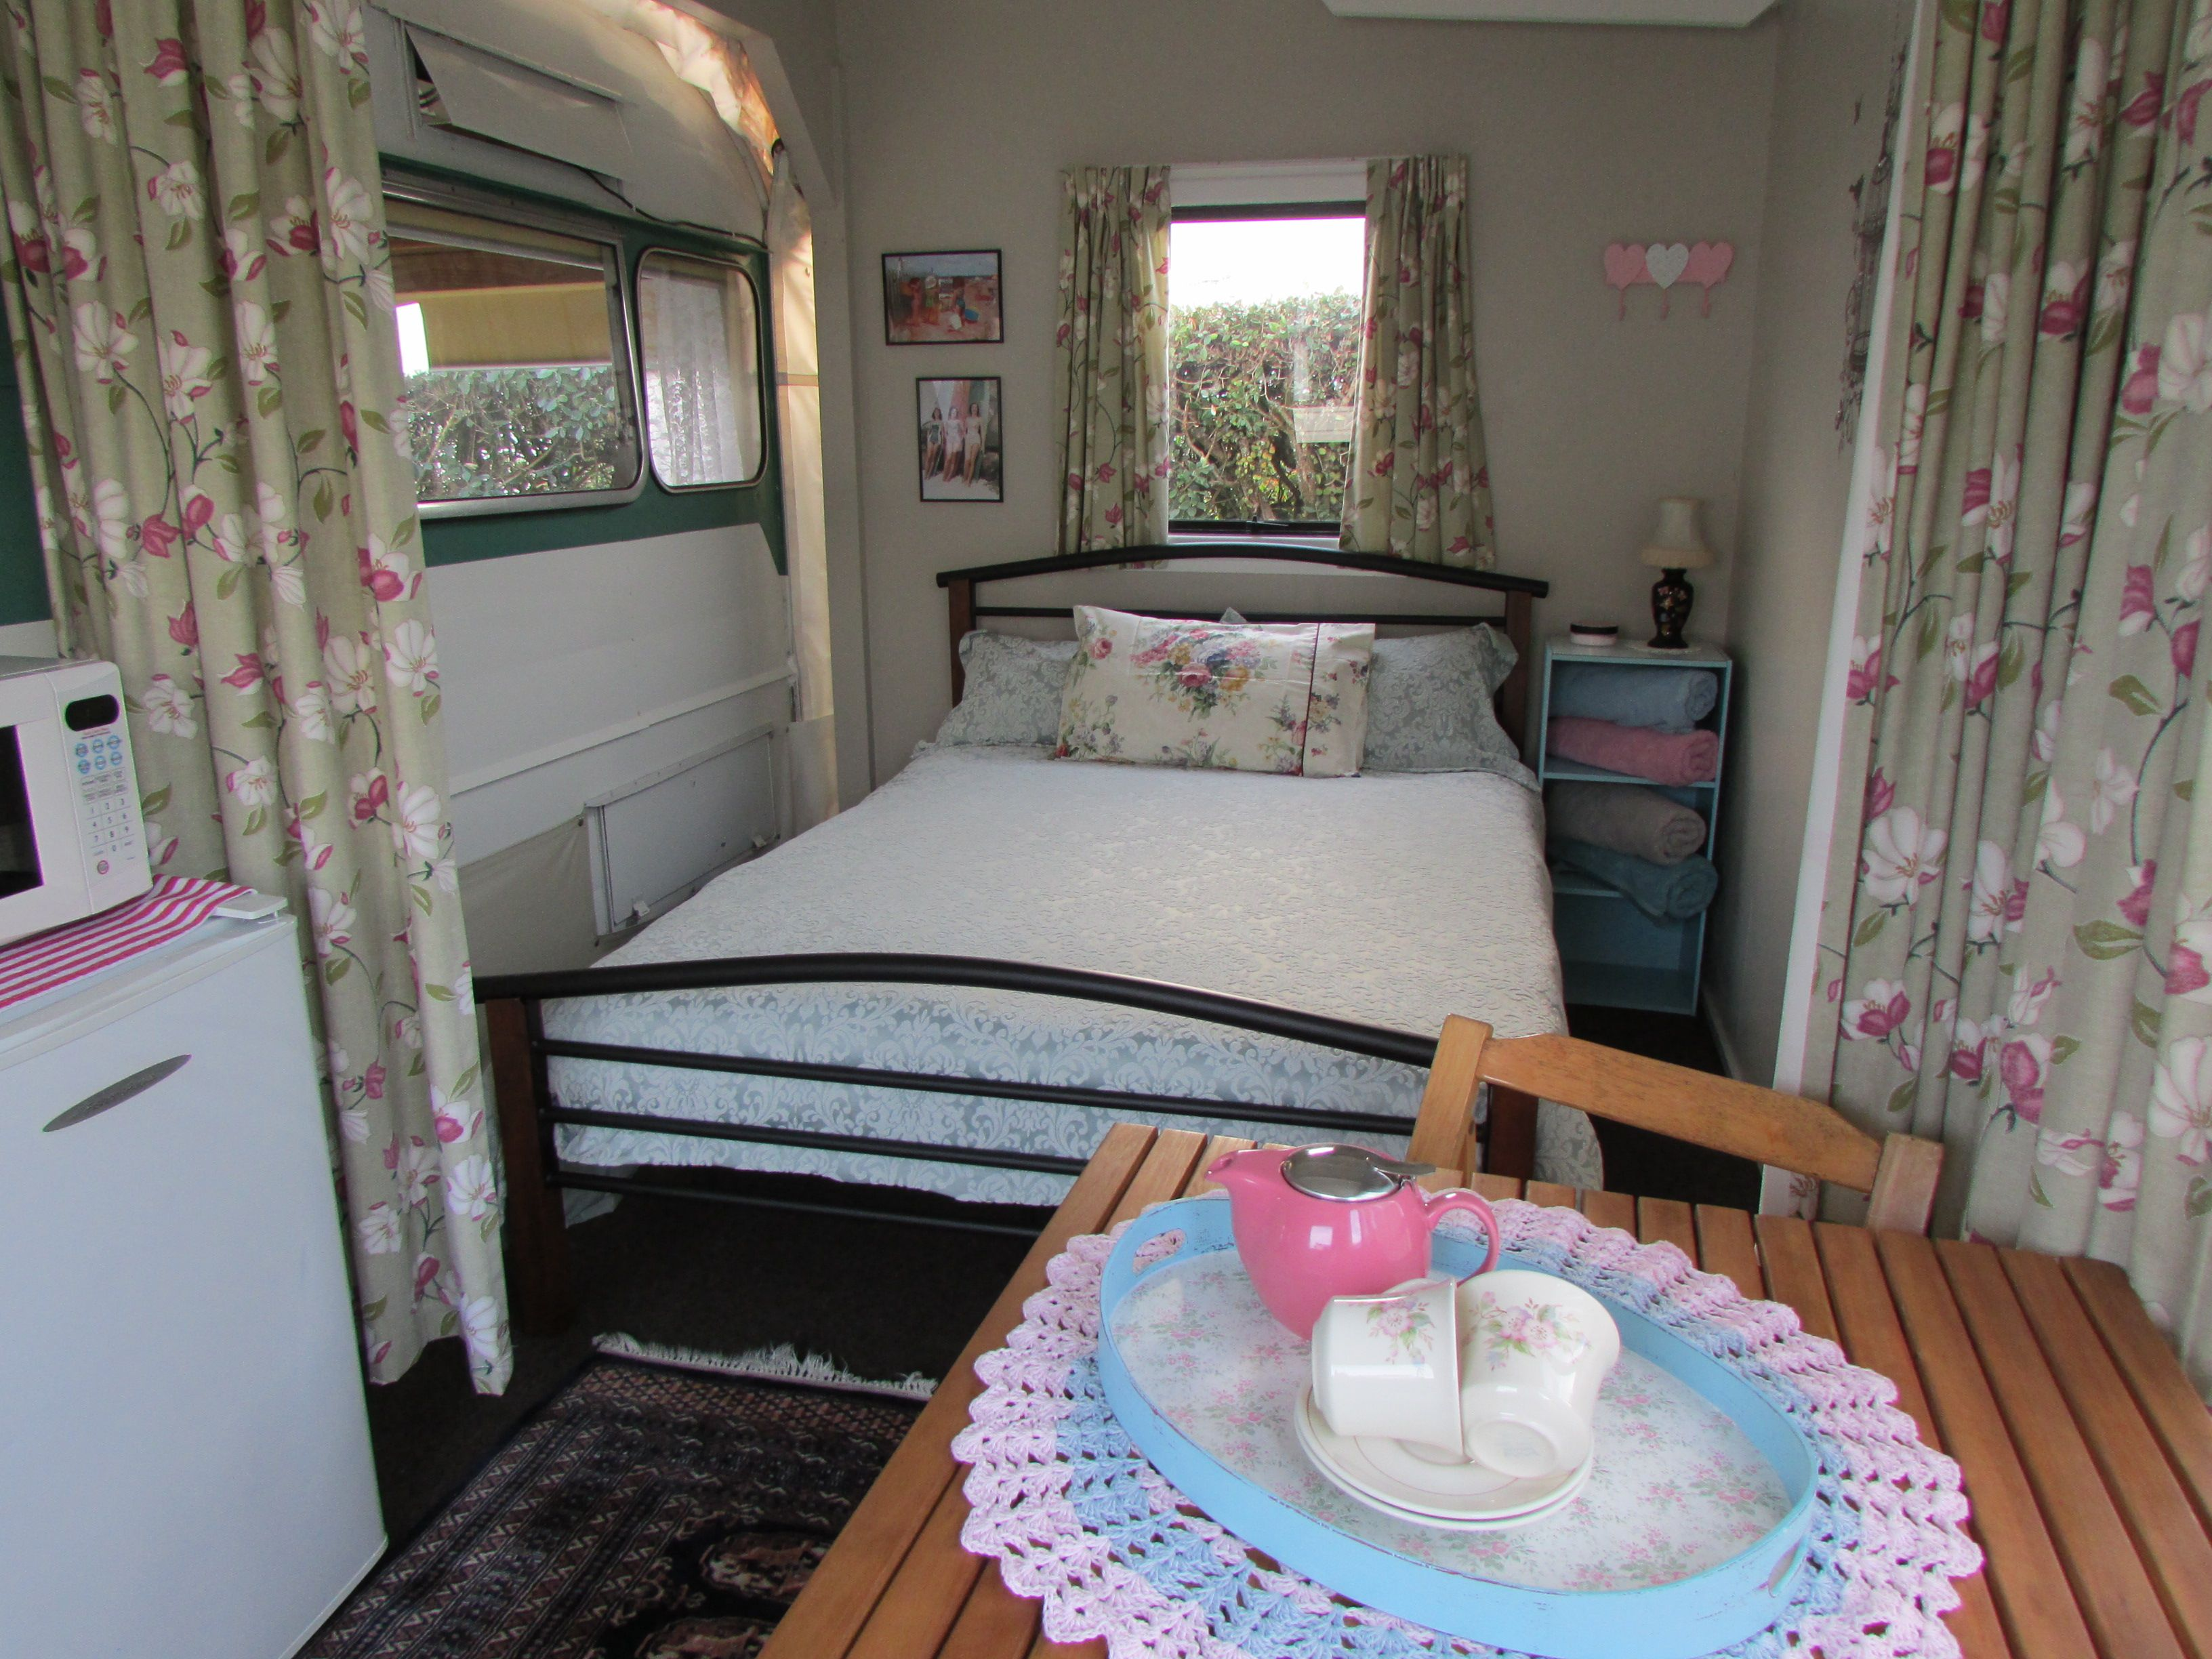 Awning Interior Includes A Double Bed